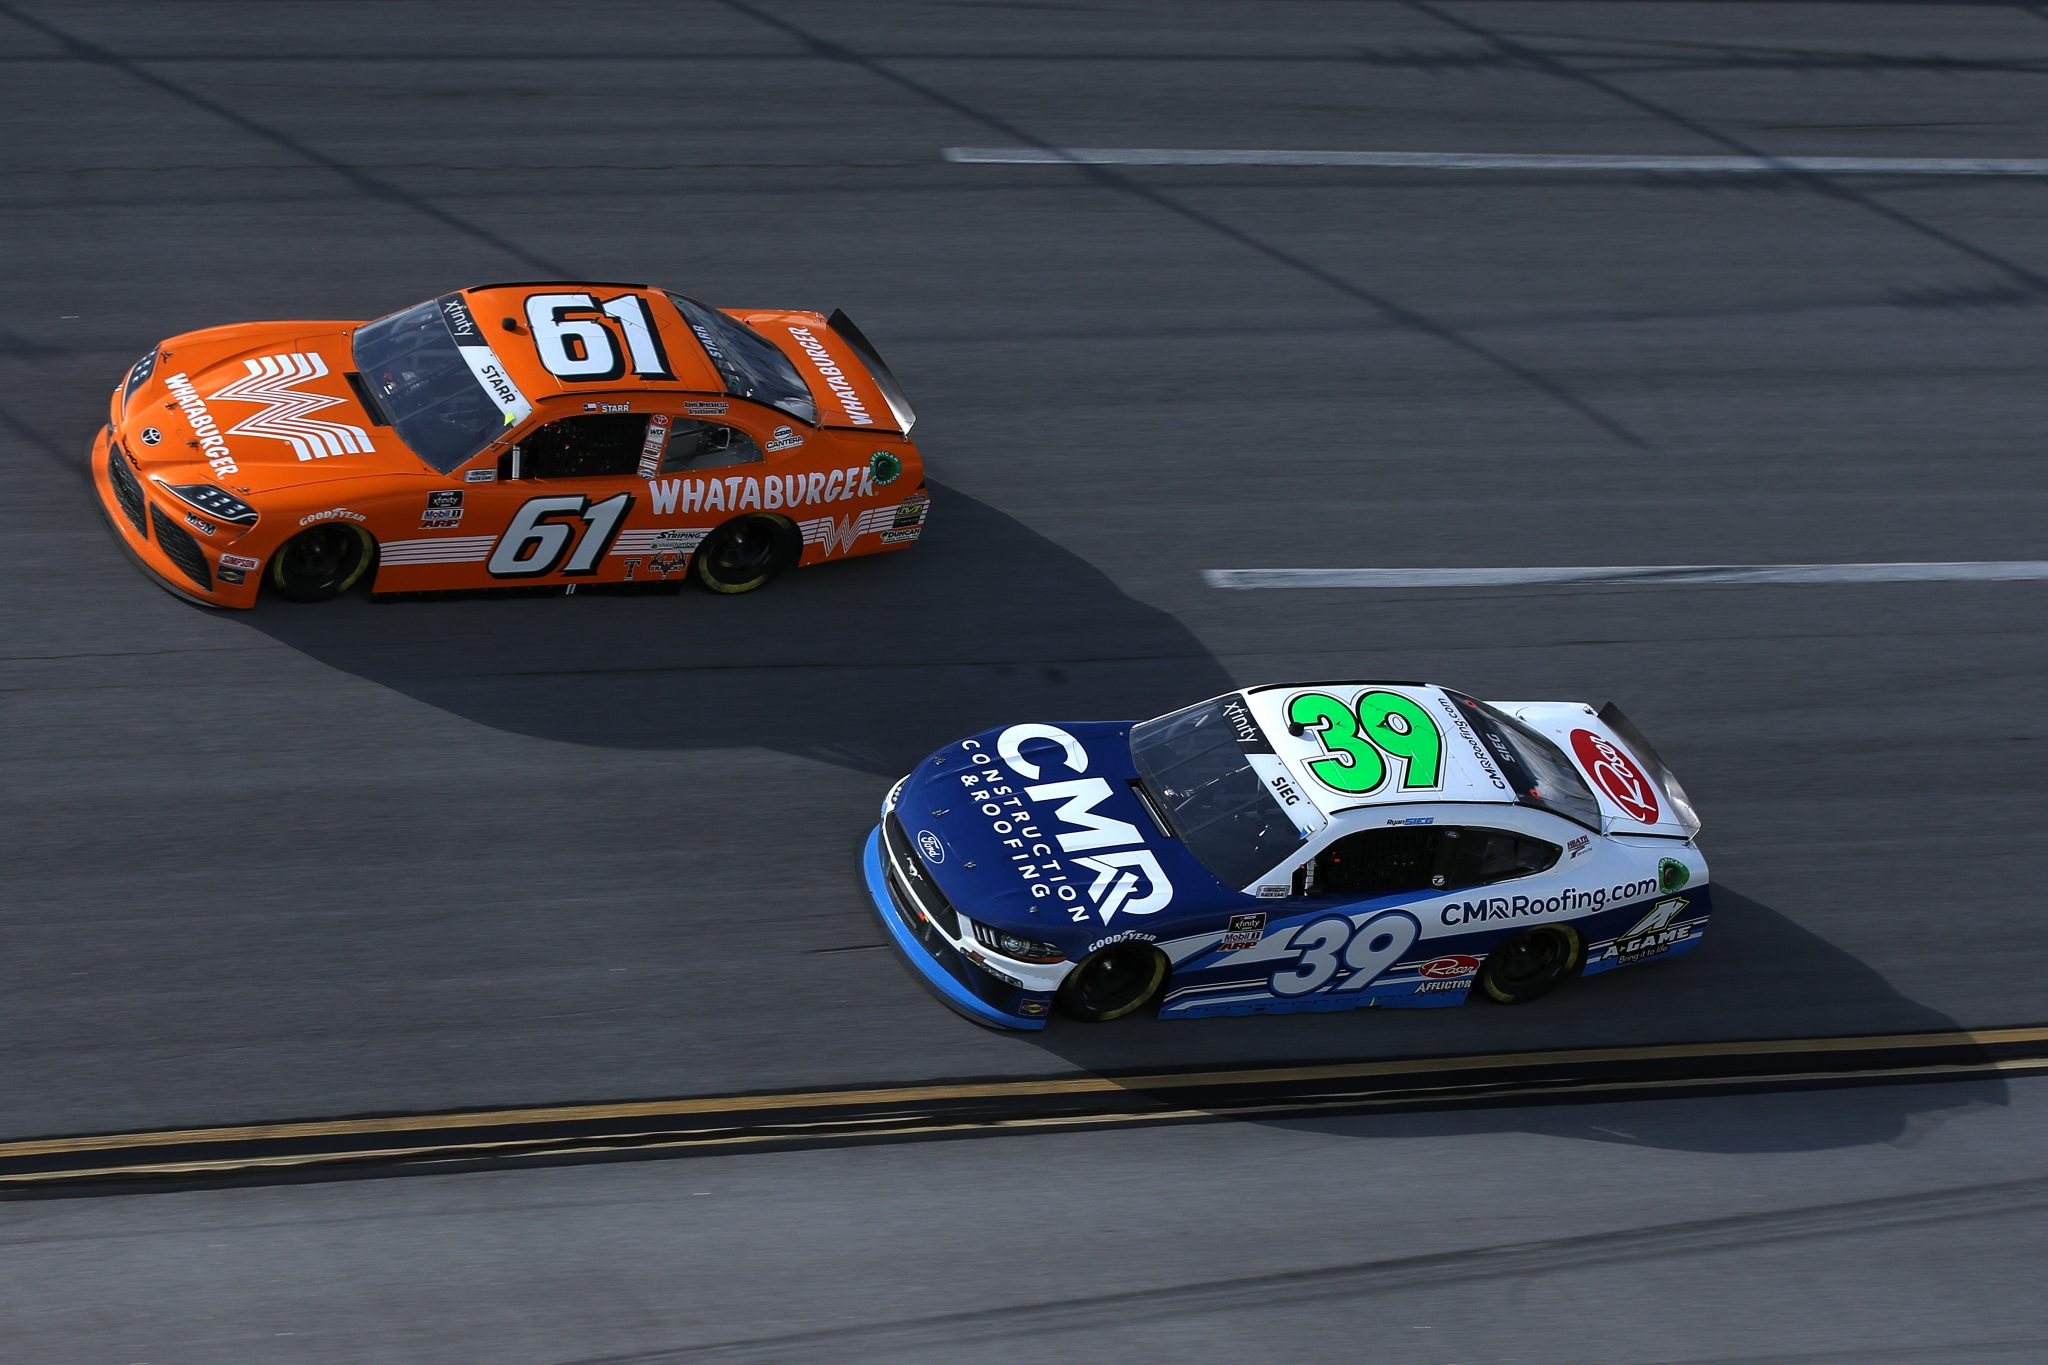 TALLADEGA, ALABAMA - APRIL 24: Ryan Sieg, driver of the #39 CMR Construction and Roofing Ford, and David Starr, driver of the #61 Whataburger Toyota, race during the NASCAR Xfinity Series Ag-Pro 300 at Talladega Superspeedway on April 24, 2021 in Talladega, Alabama. (Photo by Sean Gardner/Getty Images) | Getty Images